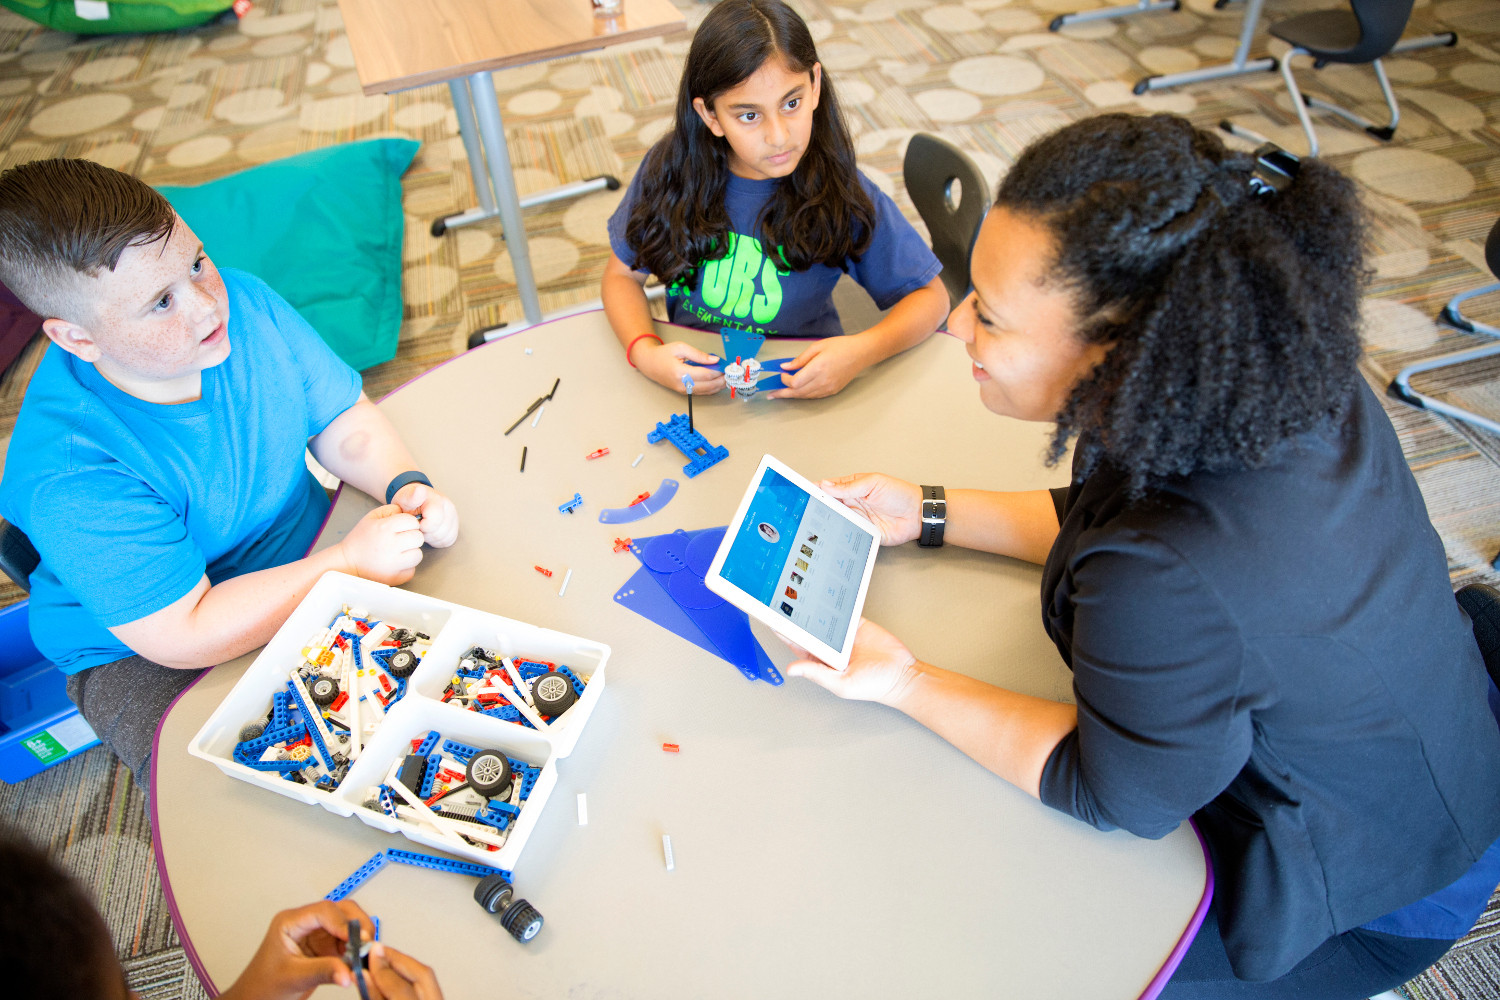 Apple, IBM launch Watson Element for Educators, their first mobile app for schools